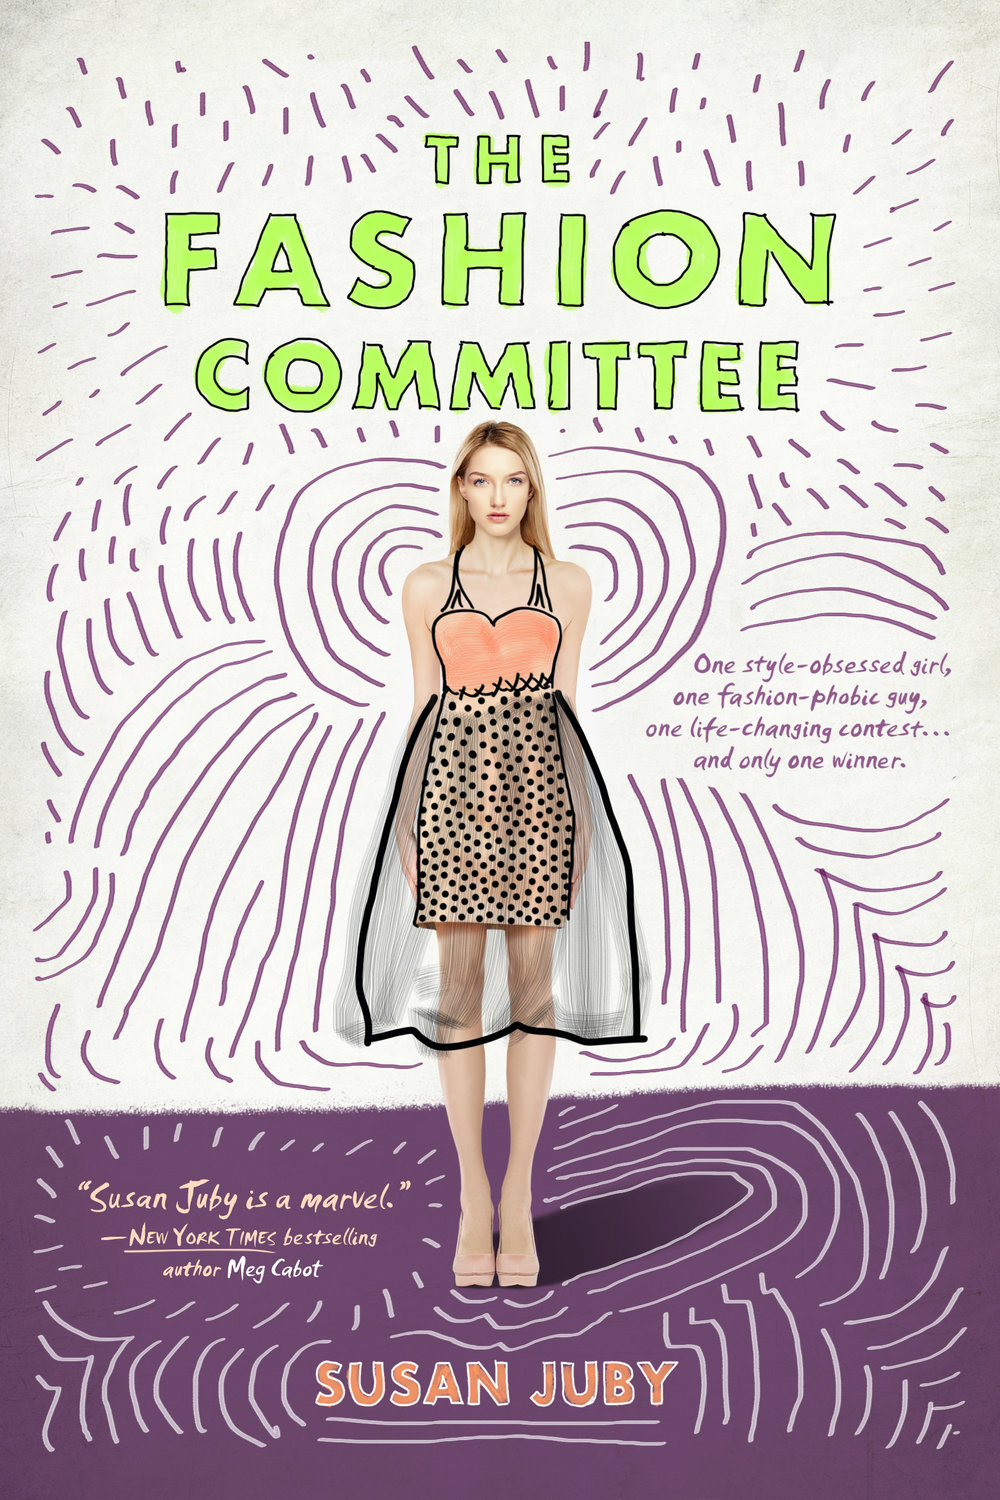 The Fashion Committee, by Susan Juby